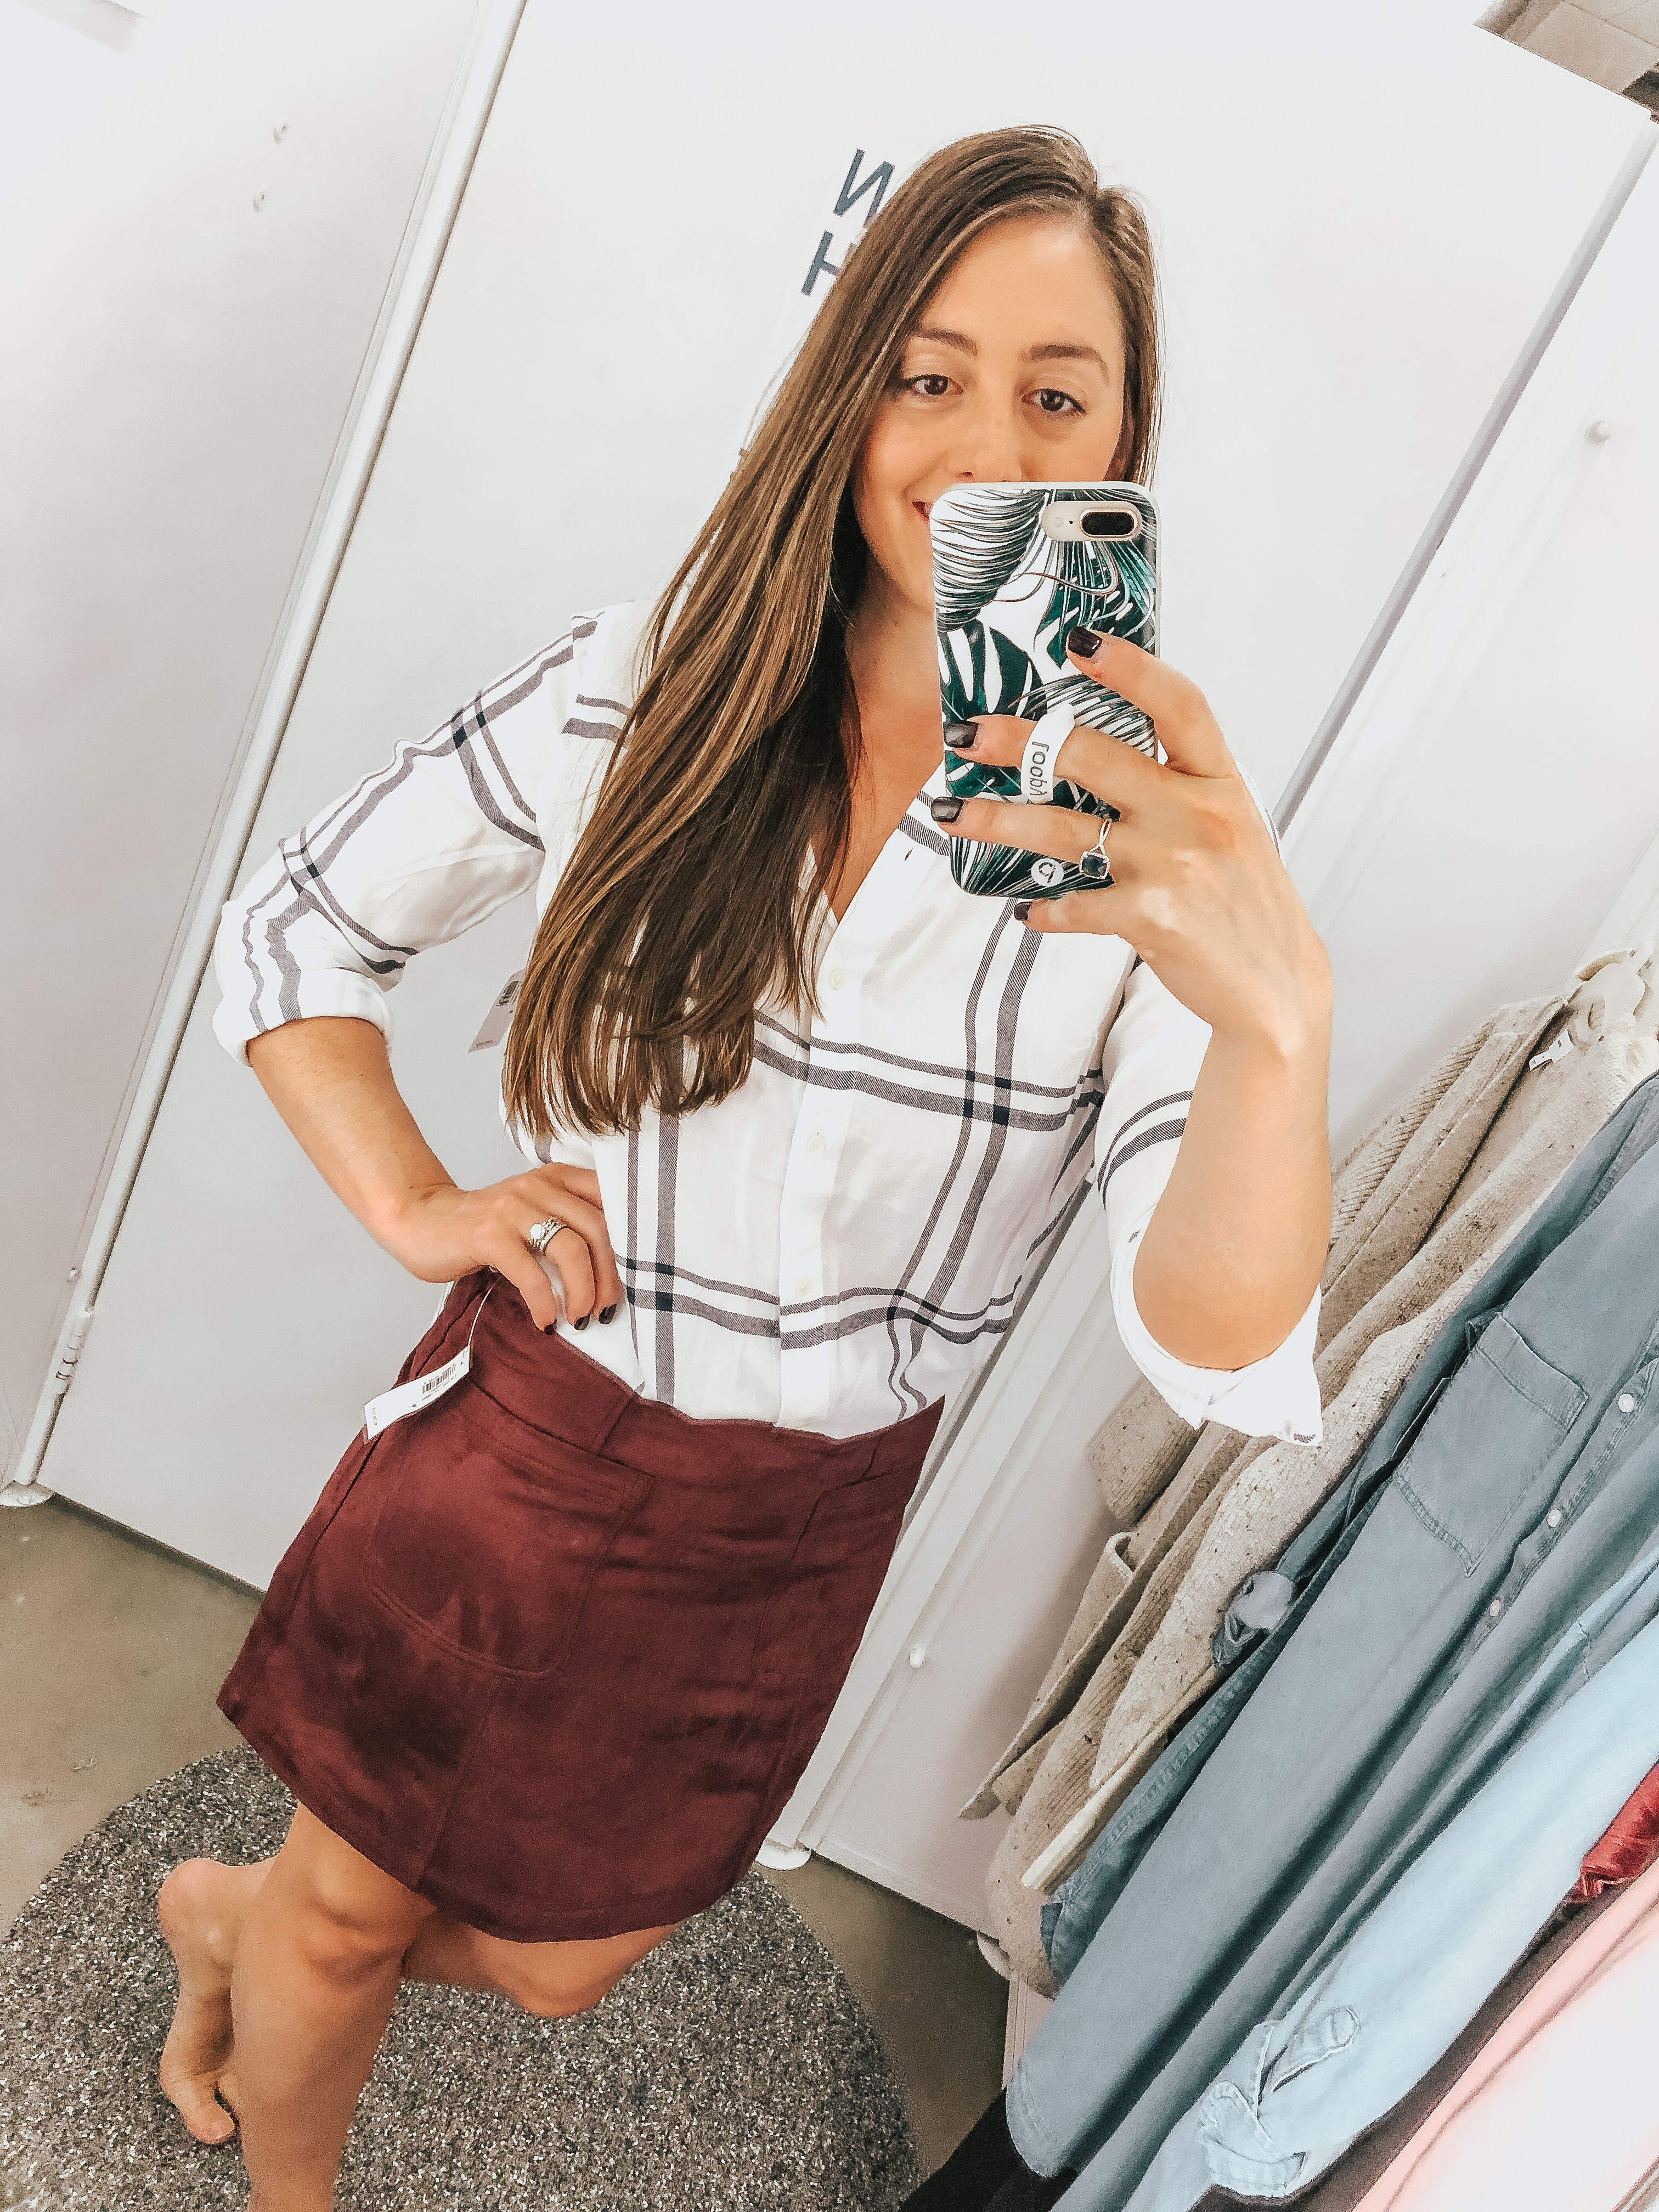 Old Navy Try-On November. Come check out Old Navy's Fall Fashion items to help you stay warm and fashionable all season long!